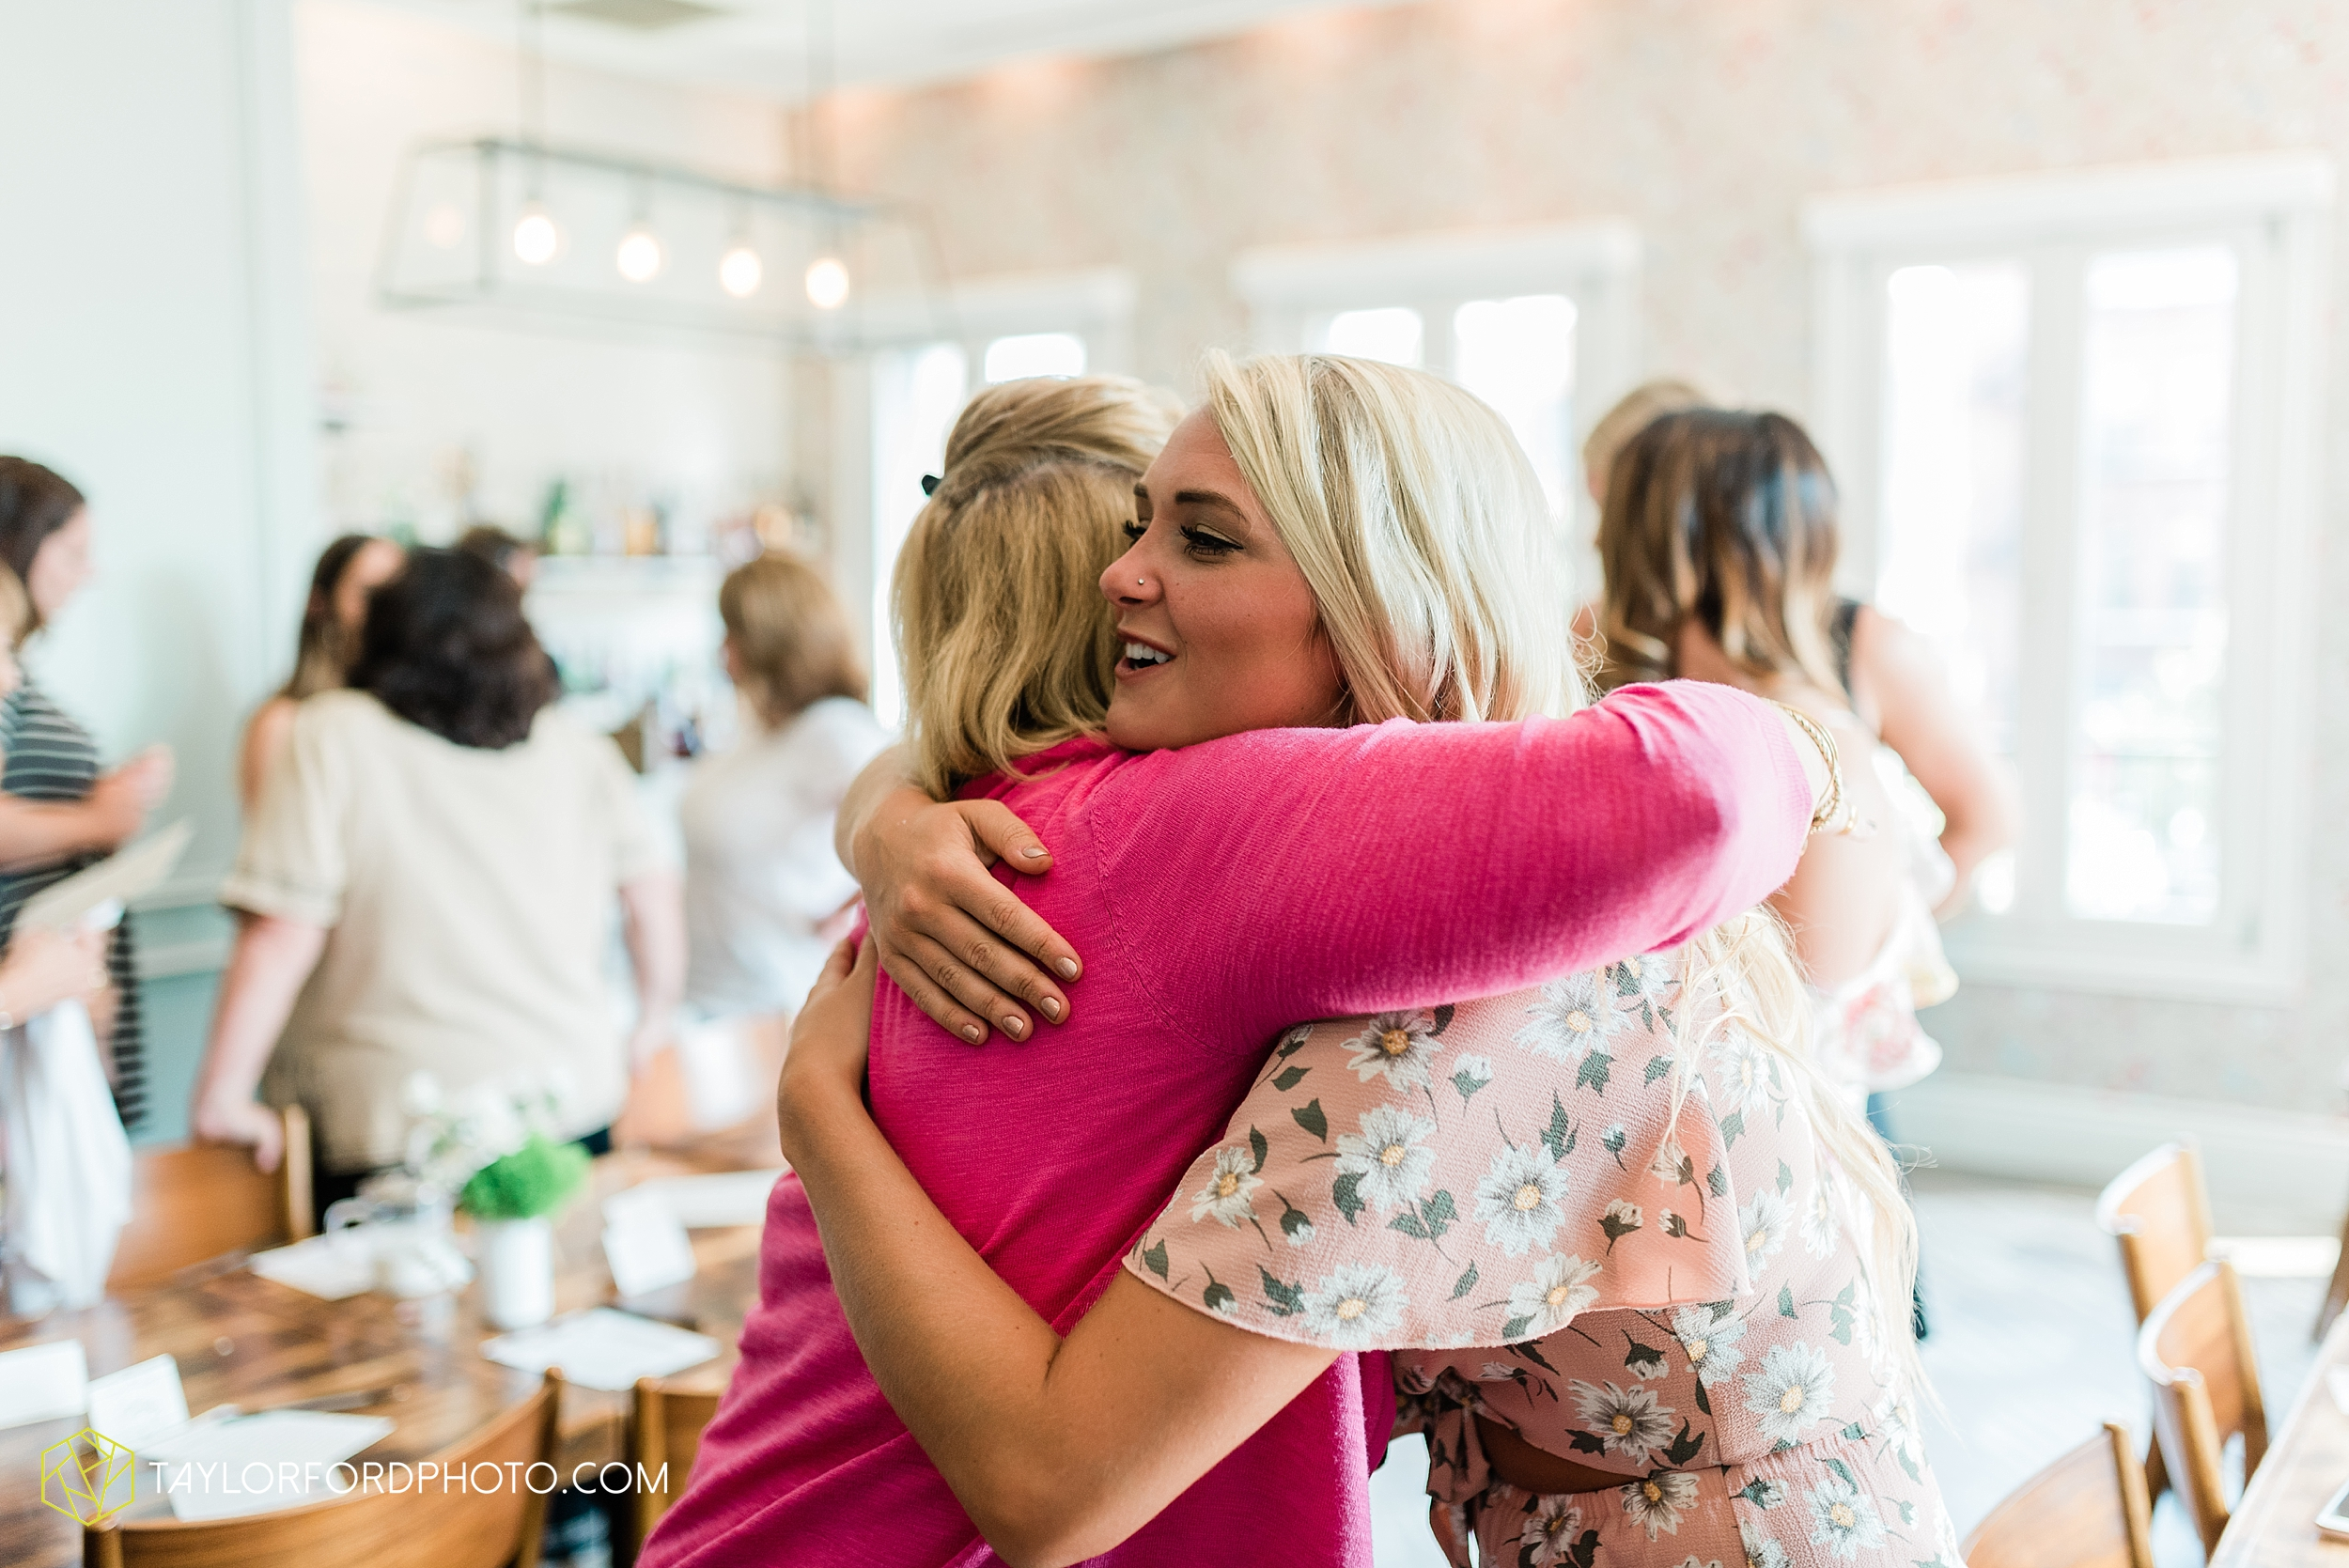 chicago-illinois-bridal-shower-little-goat-diner-west-loop-wedding-photographer-taylor-ford-photographer_8878.jpg